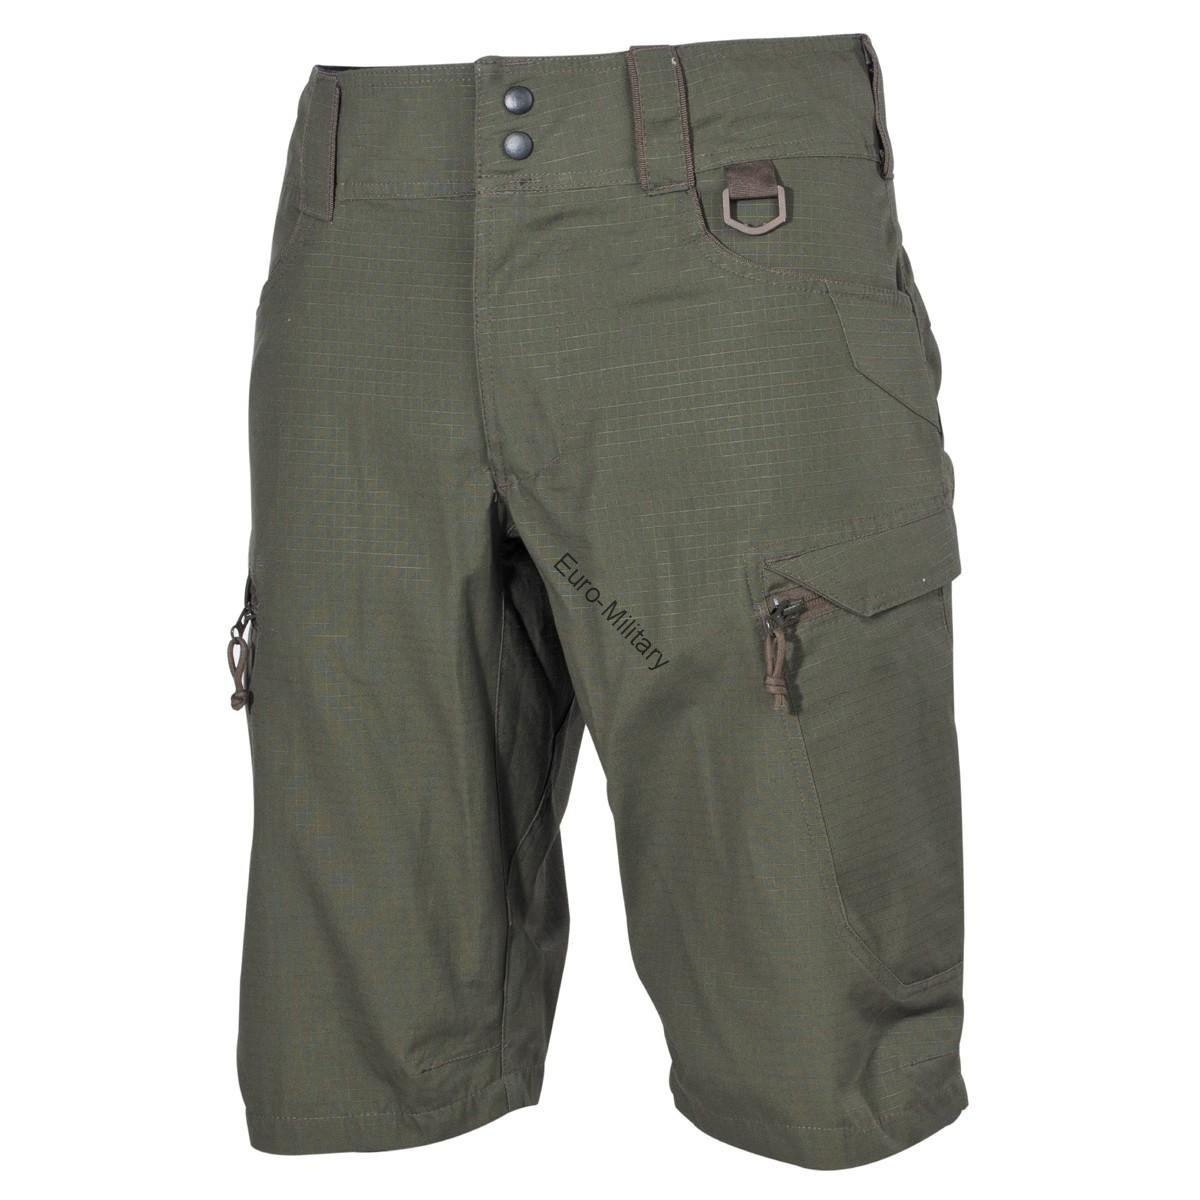 "Professional Tactical Military Battle Army Shorts ""Defense"" Rip Stop - OD Green"